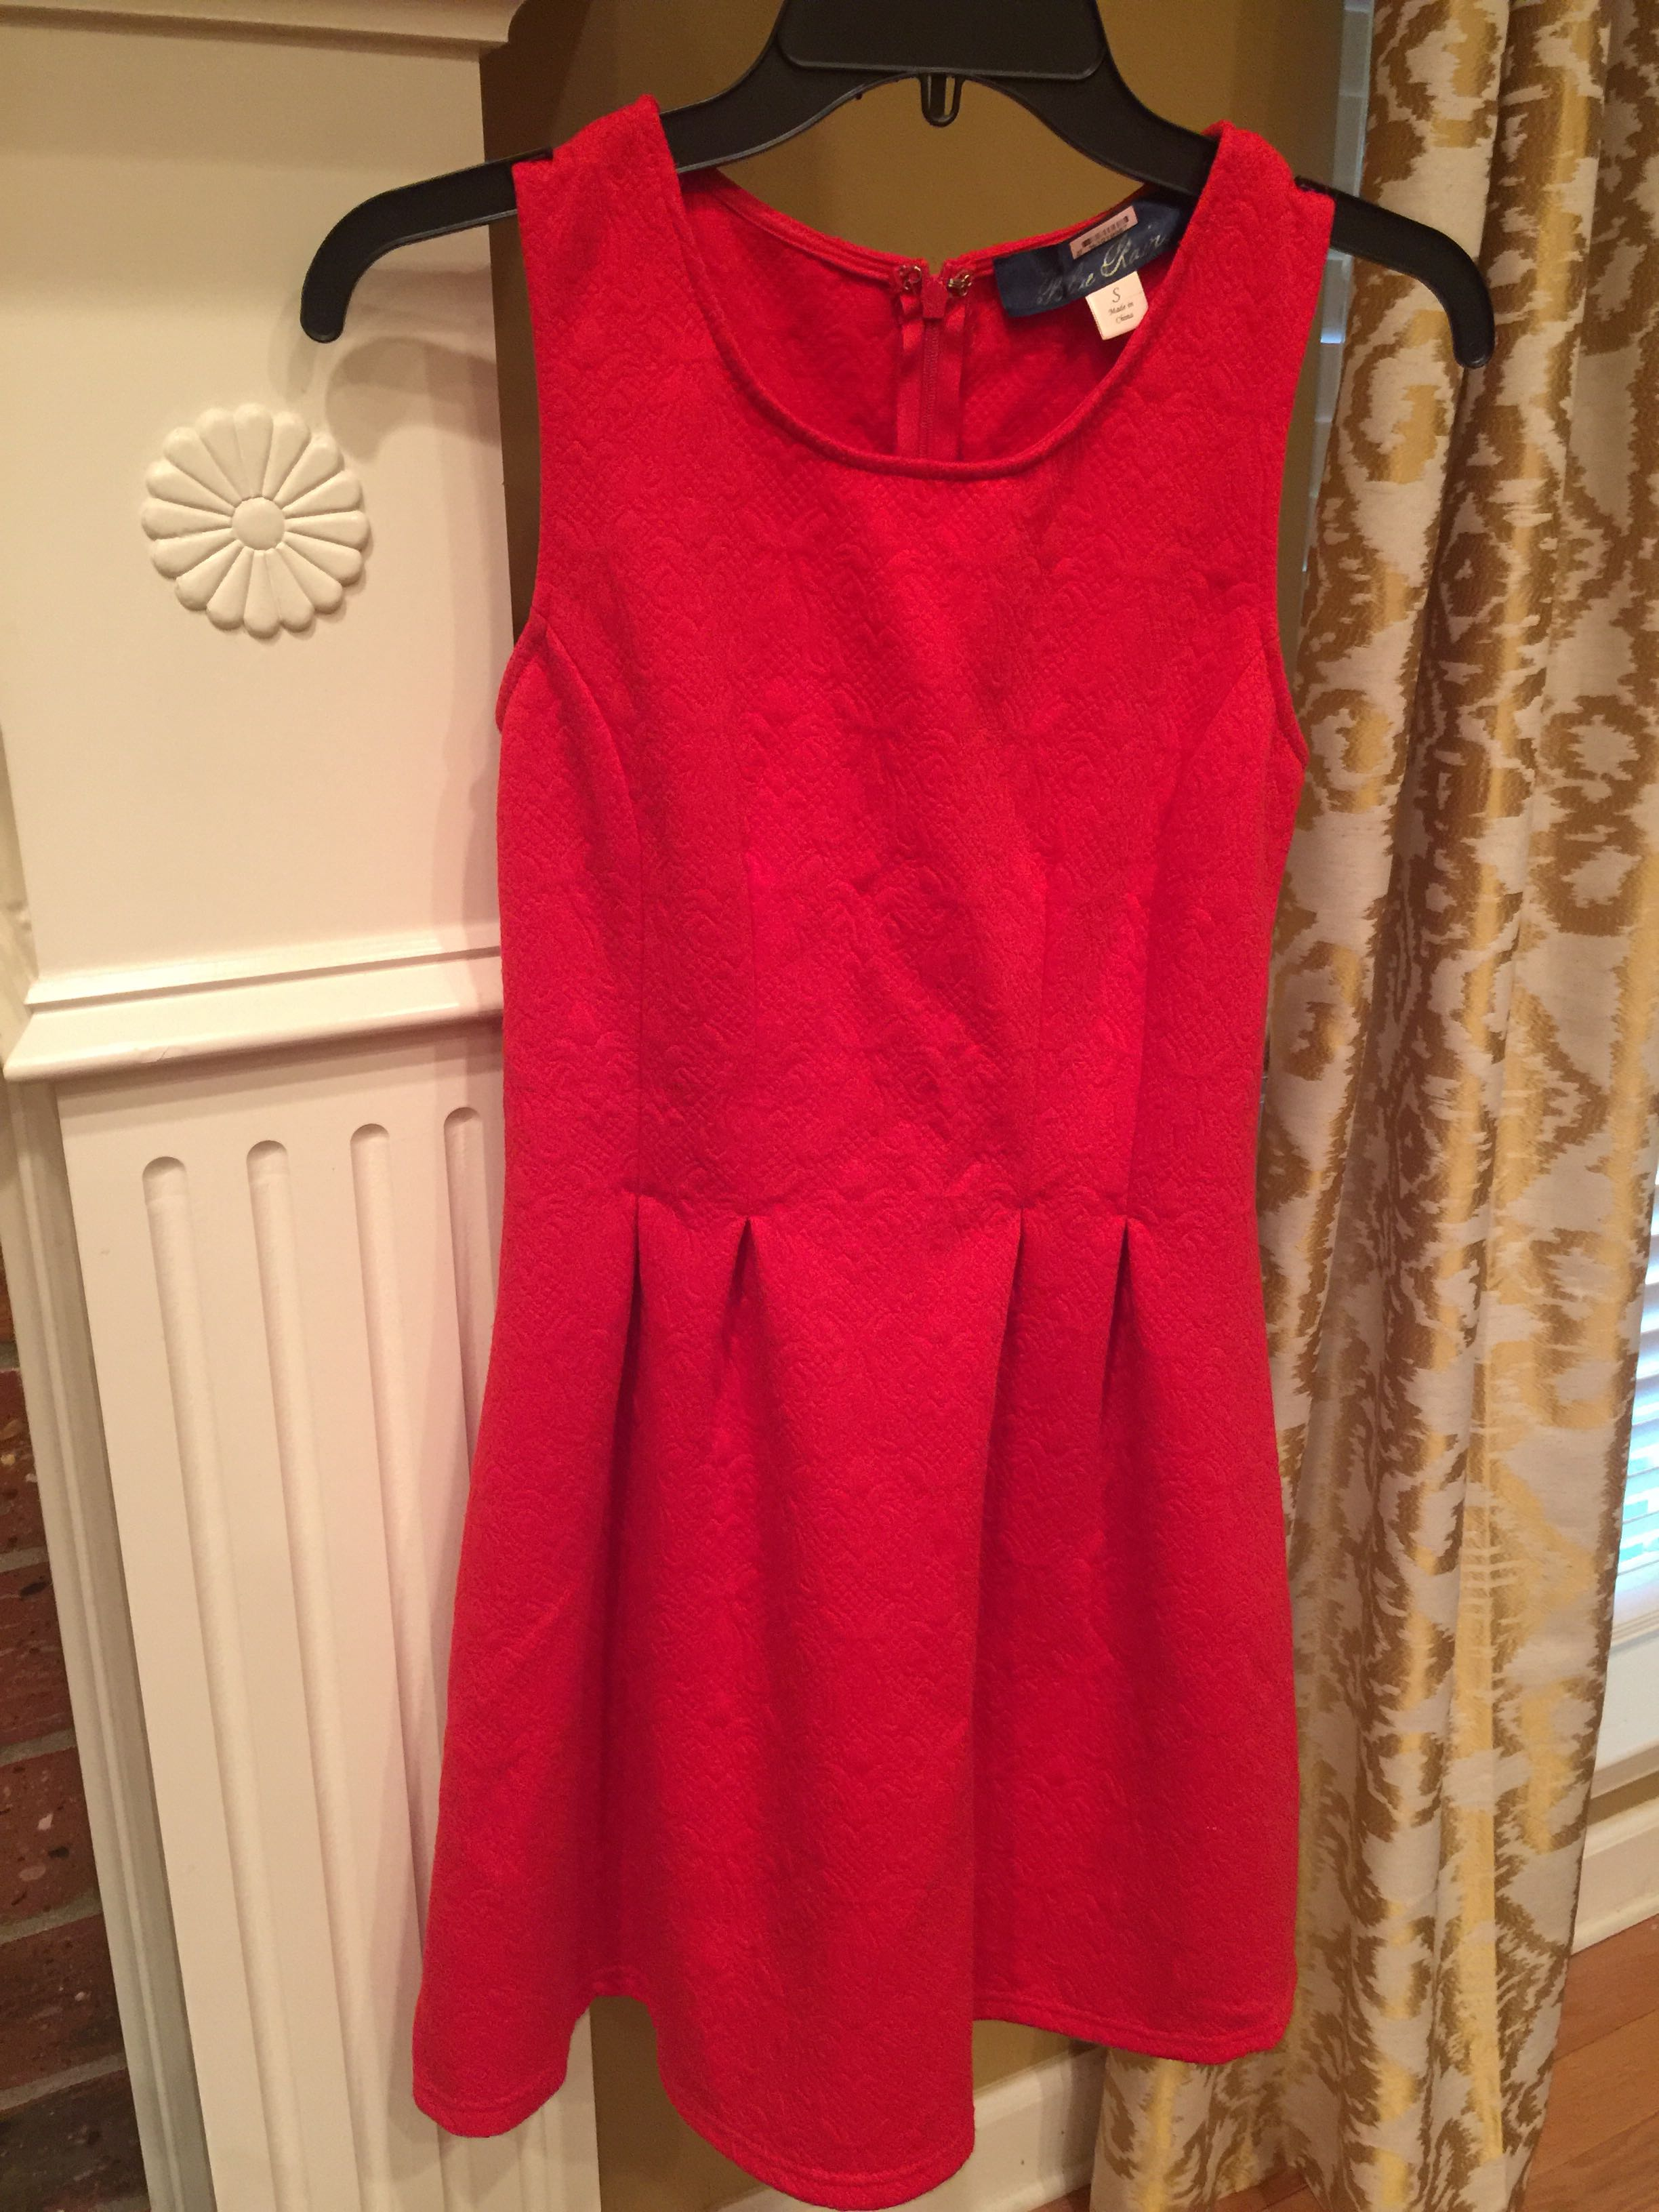 Beautiful red dress from Francesca's. Small